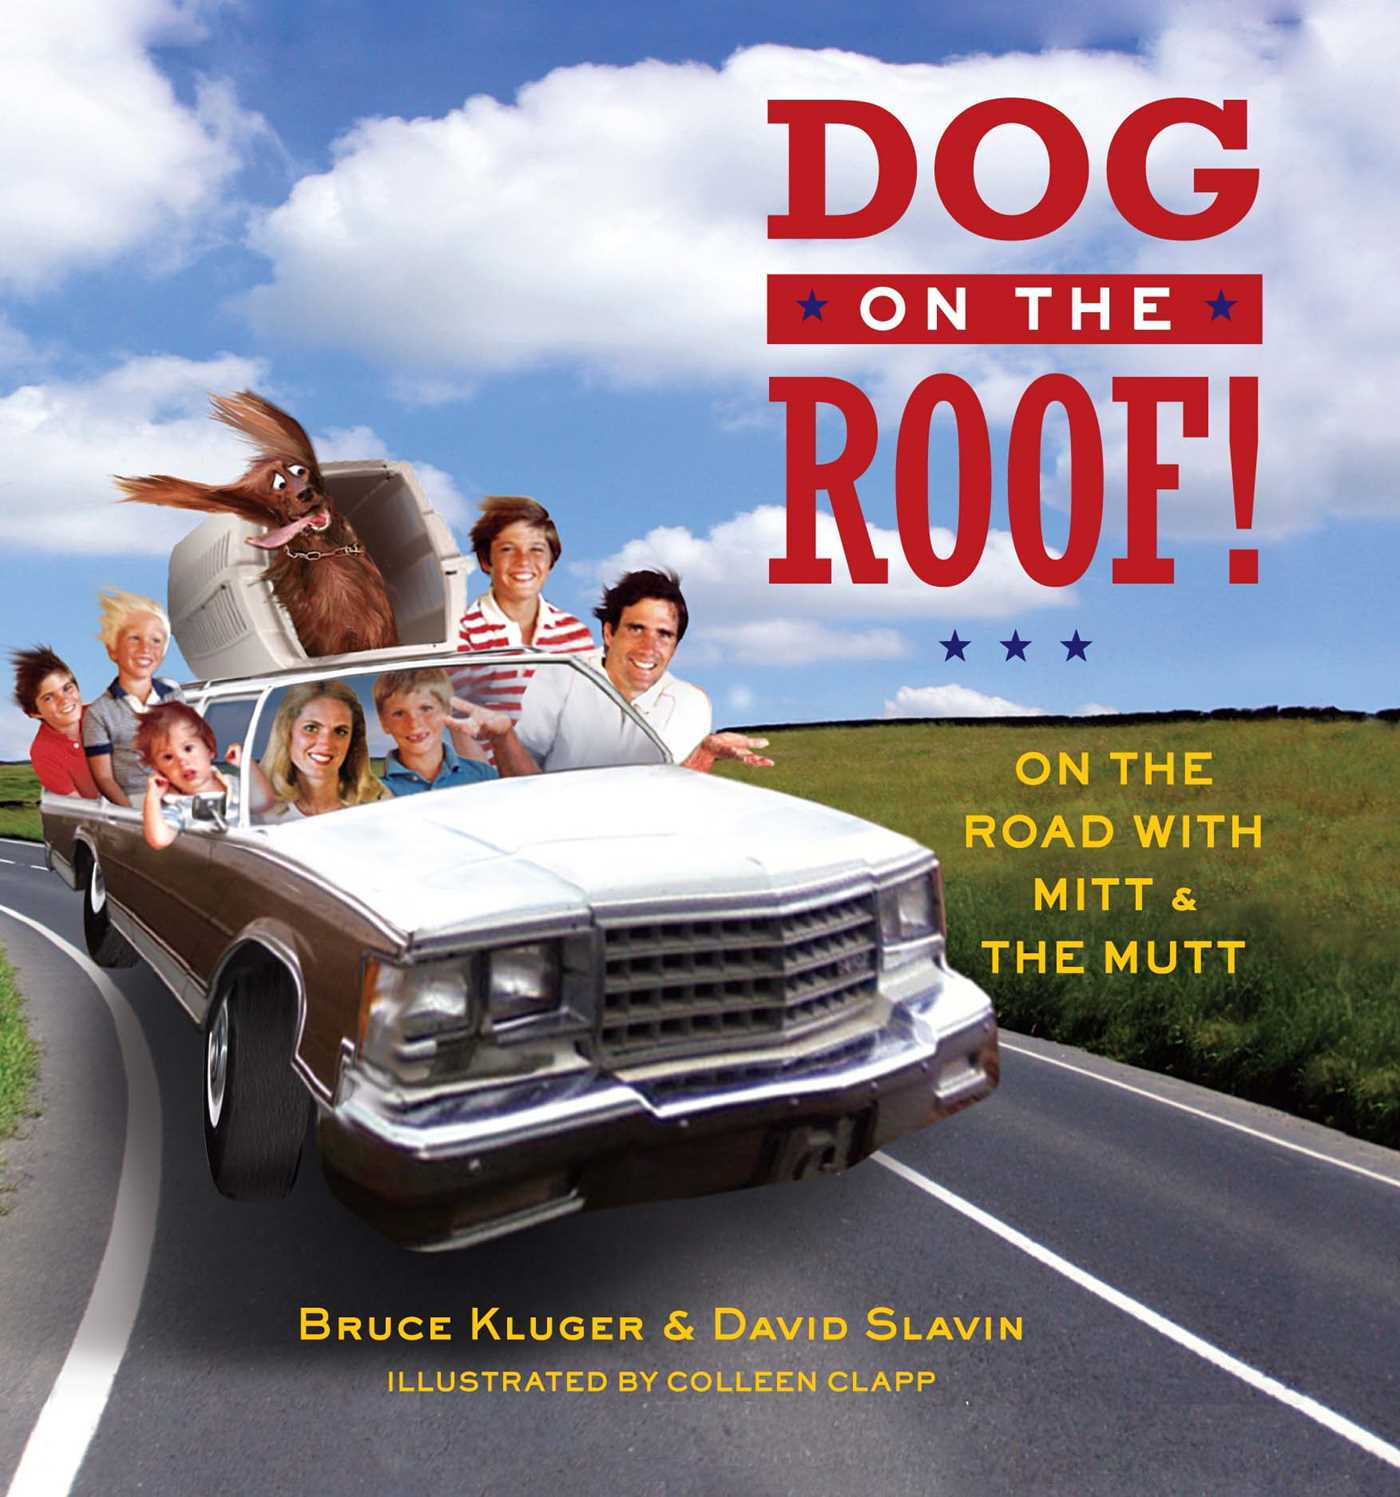 Dog-on-the-roof-9781451698893_hr